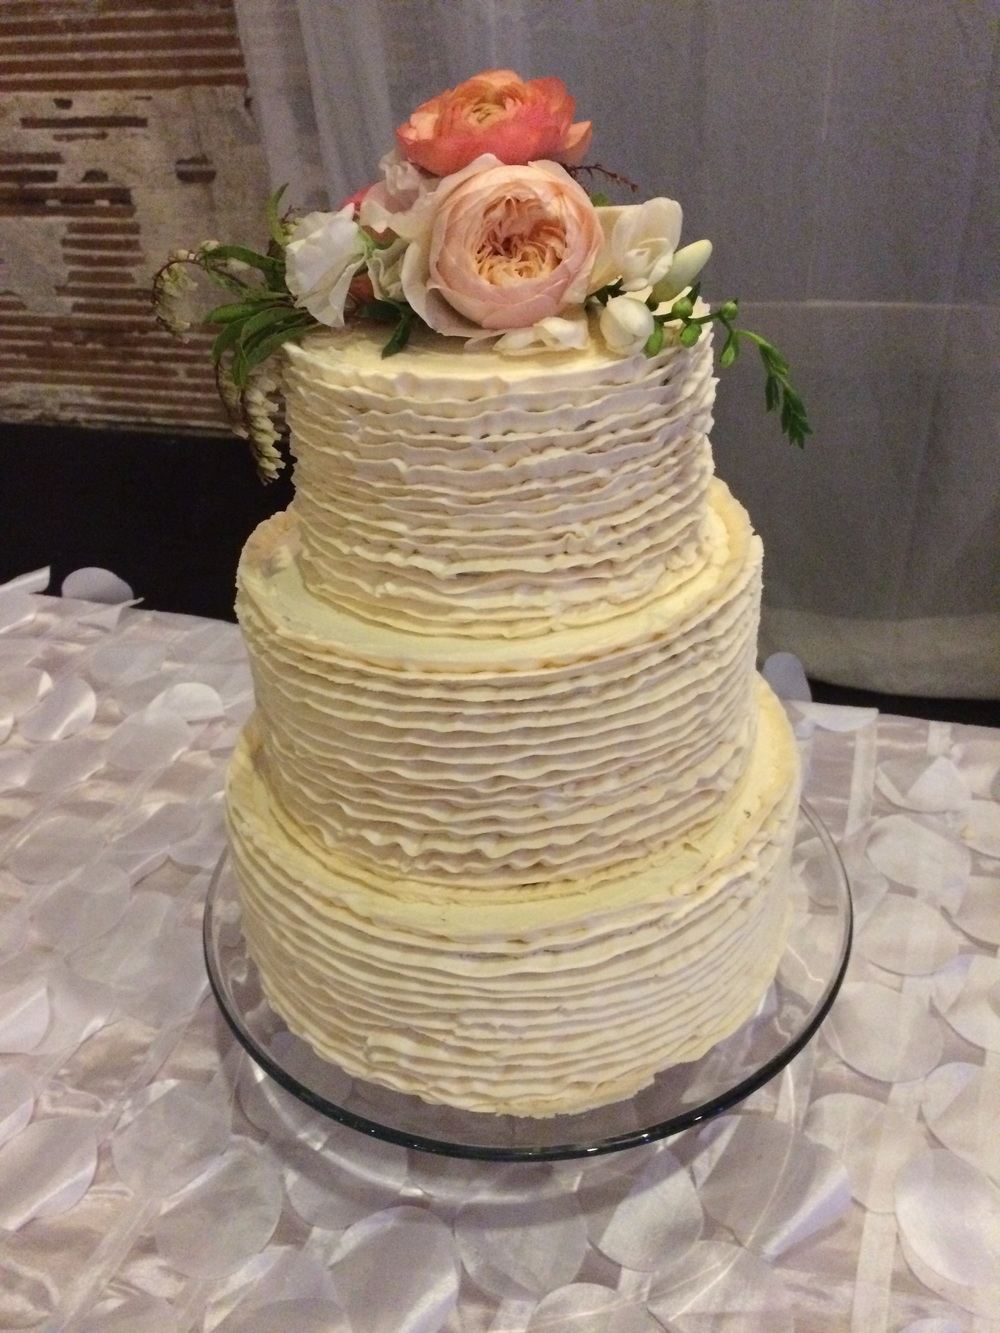 Vanilla bean wedding cake with buttercream ruffles